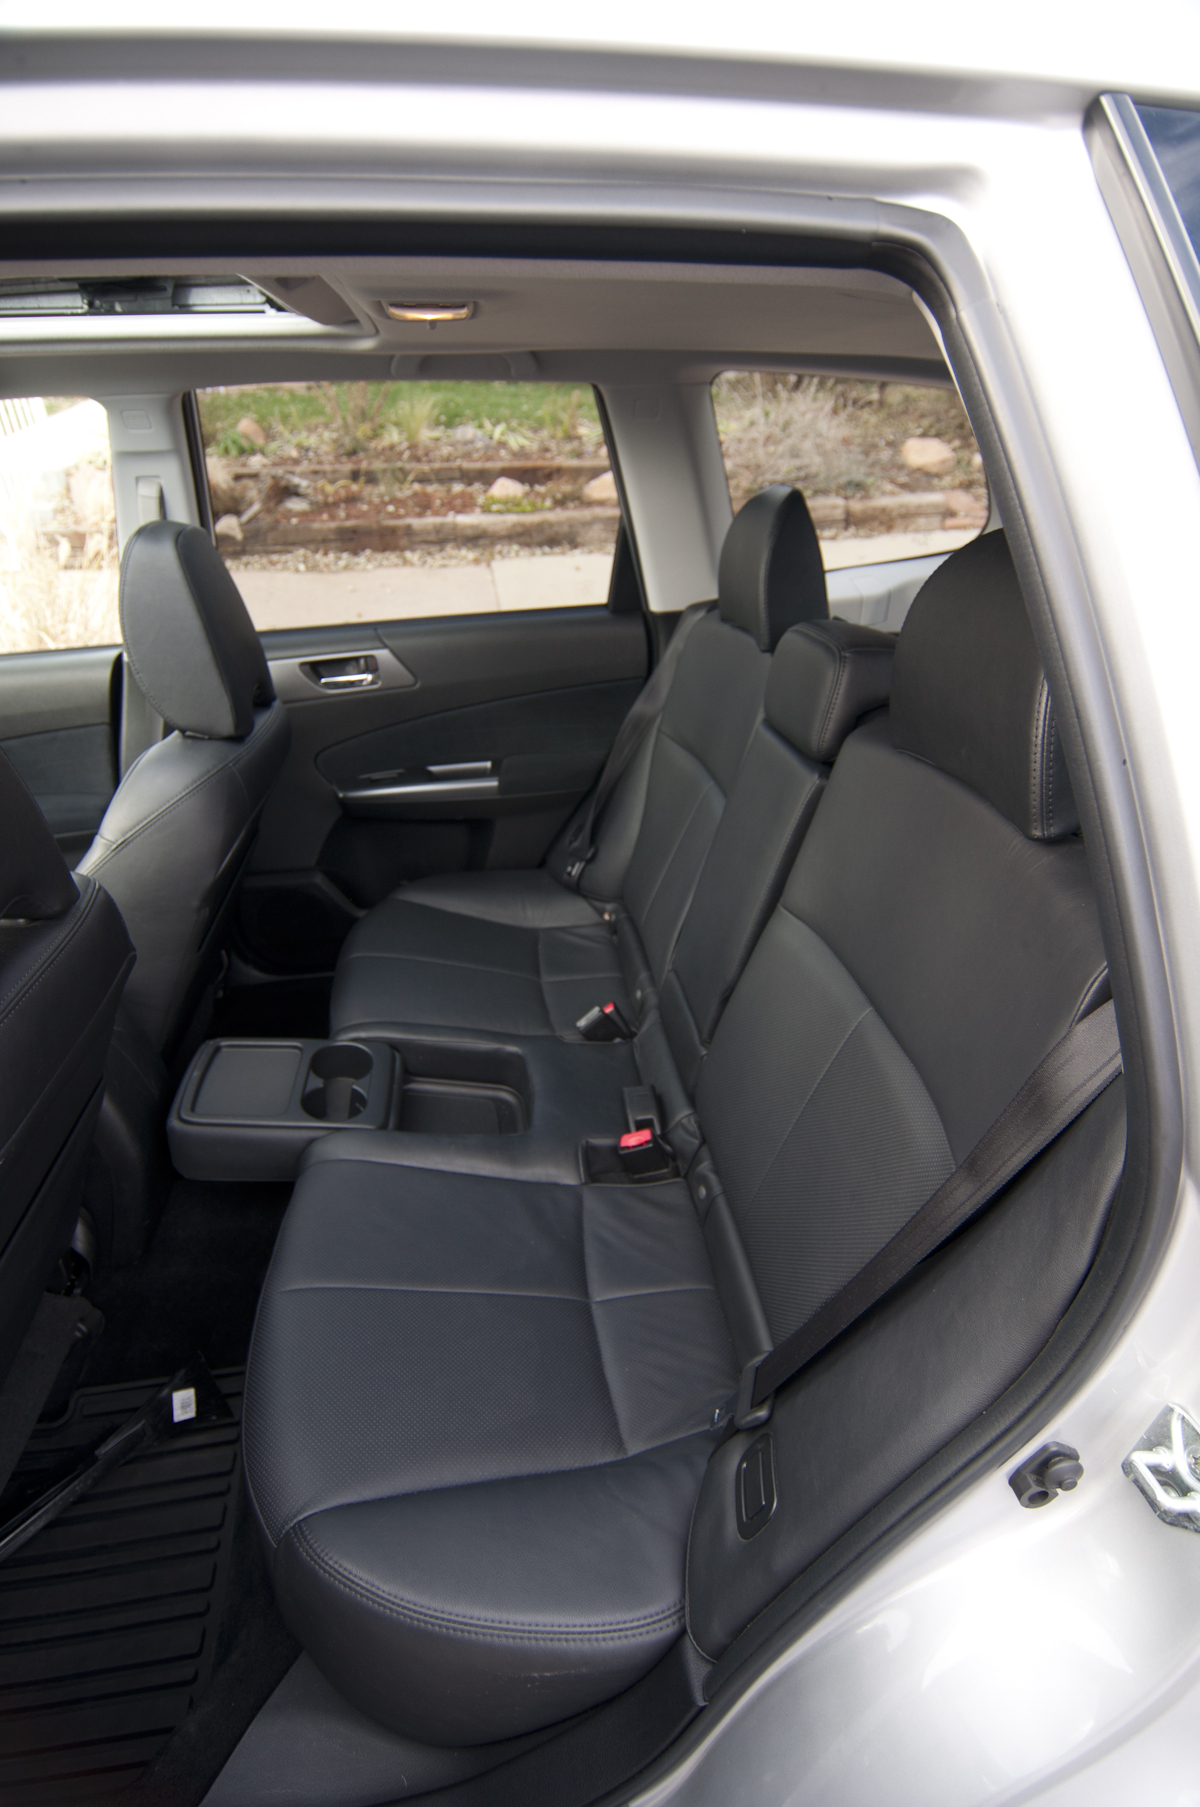 2011 Subaru Forester 2 5XT Touring Review Review – Gear & Grit